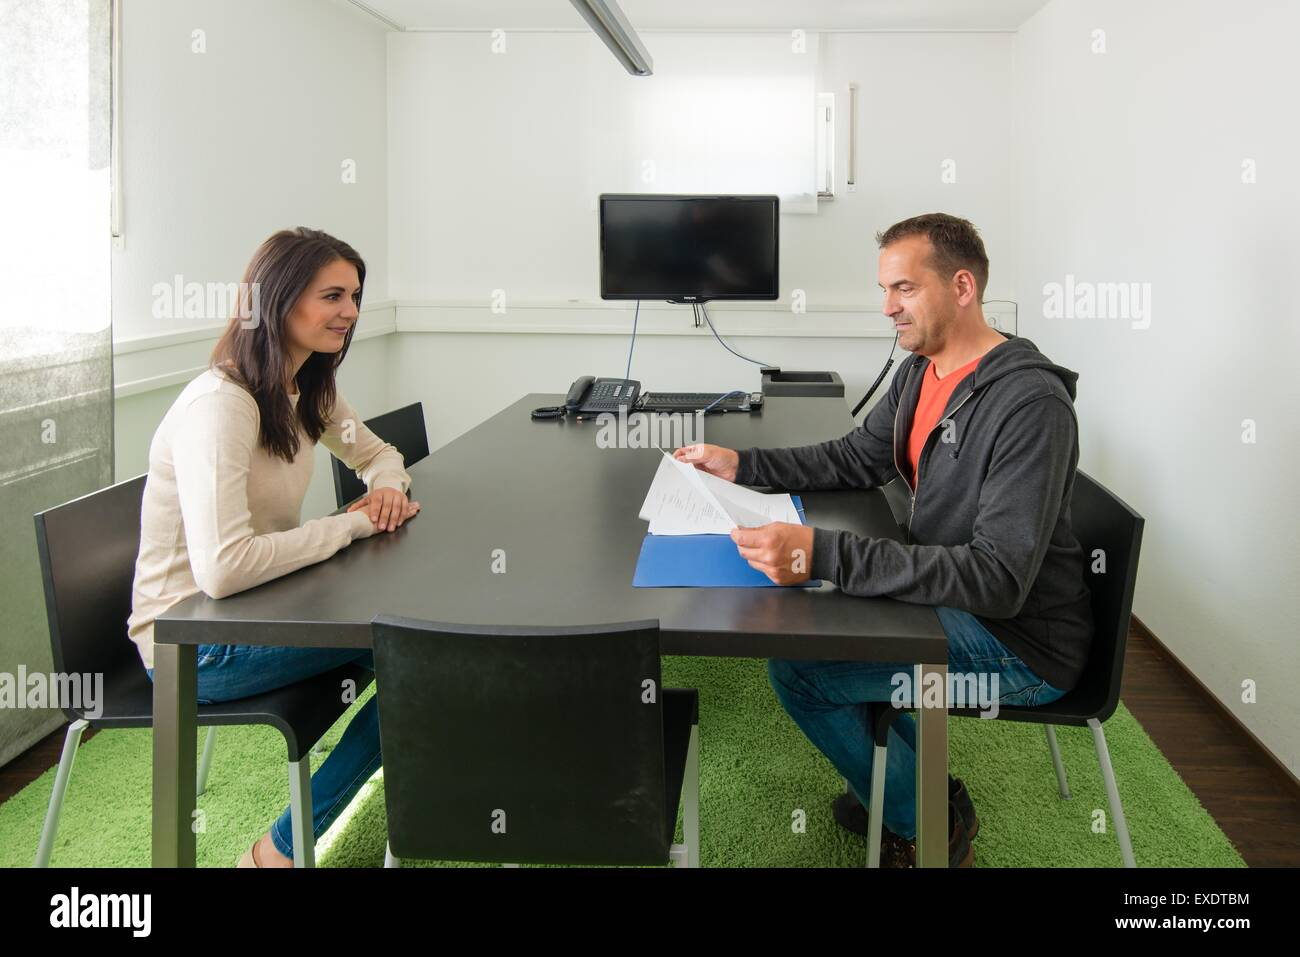 Smiling young female candidate during job interview - Stock Image